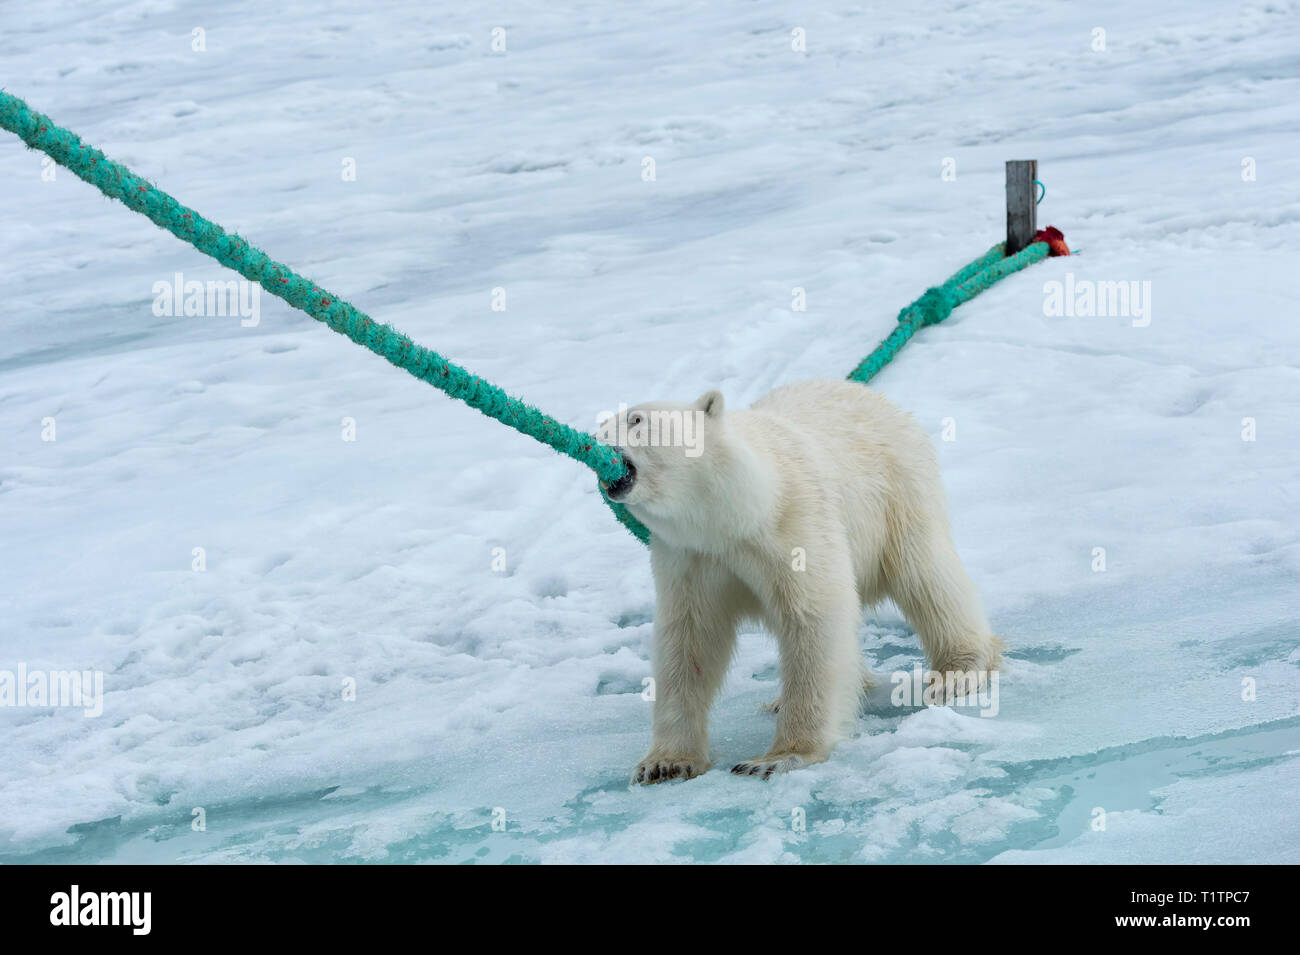 Polar Bear (Ursus maritimus) pulling and biting on rope of expedition ship, Svalbard Archipelago, Norway - Stock Image